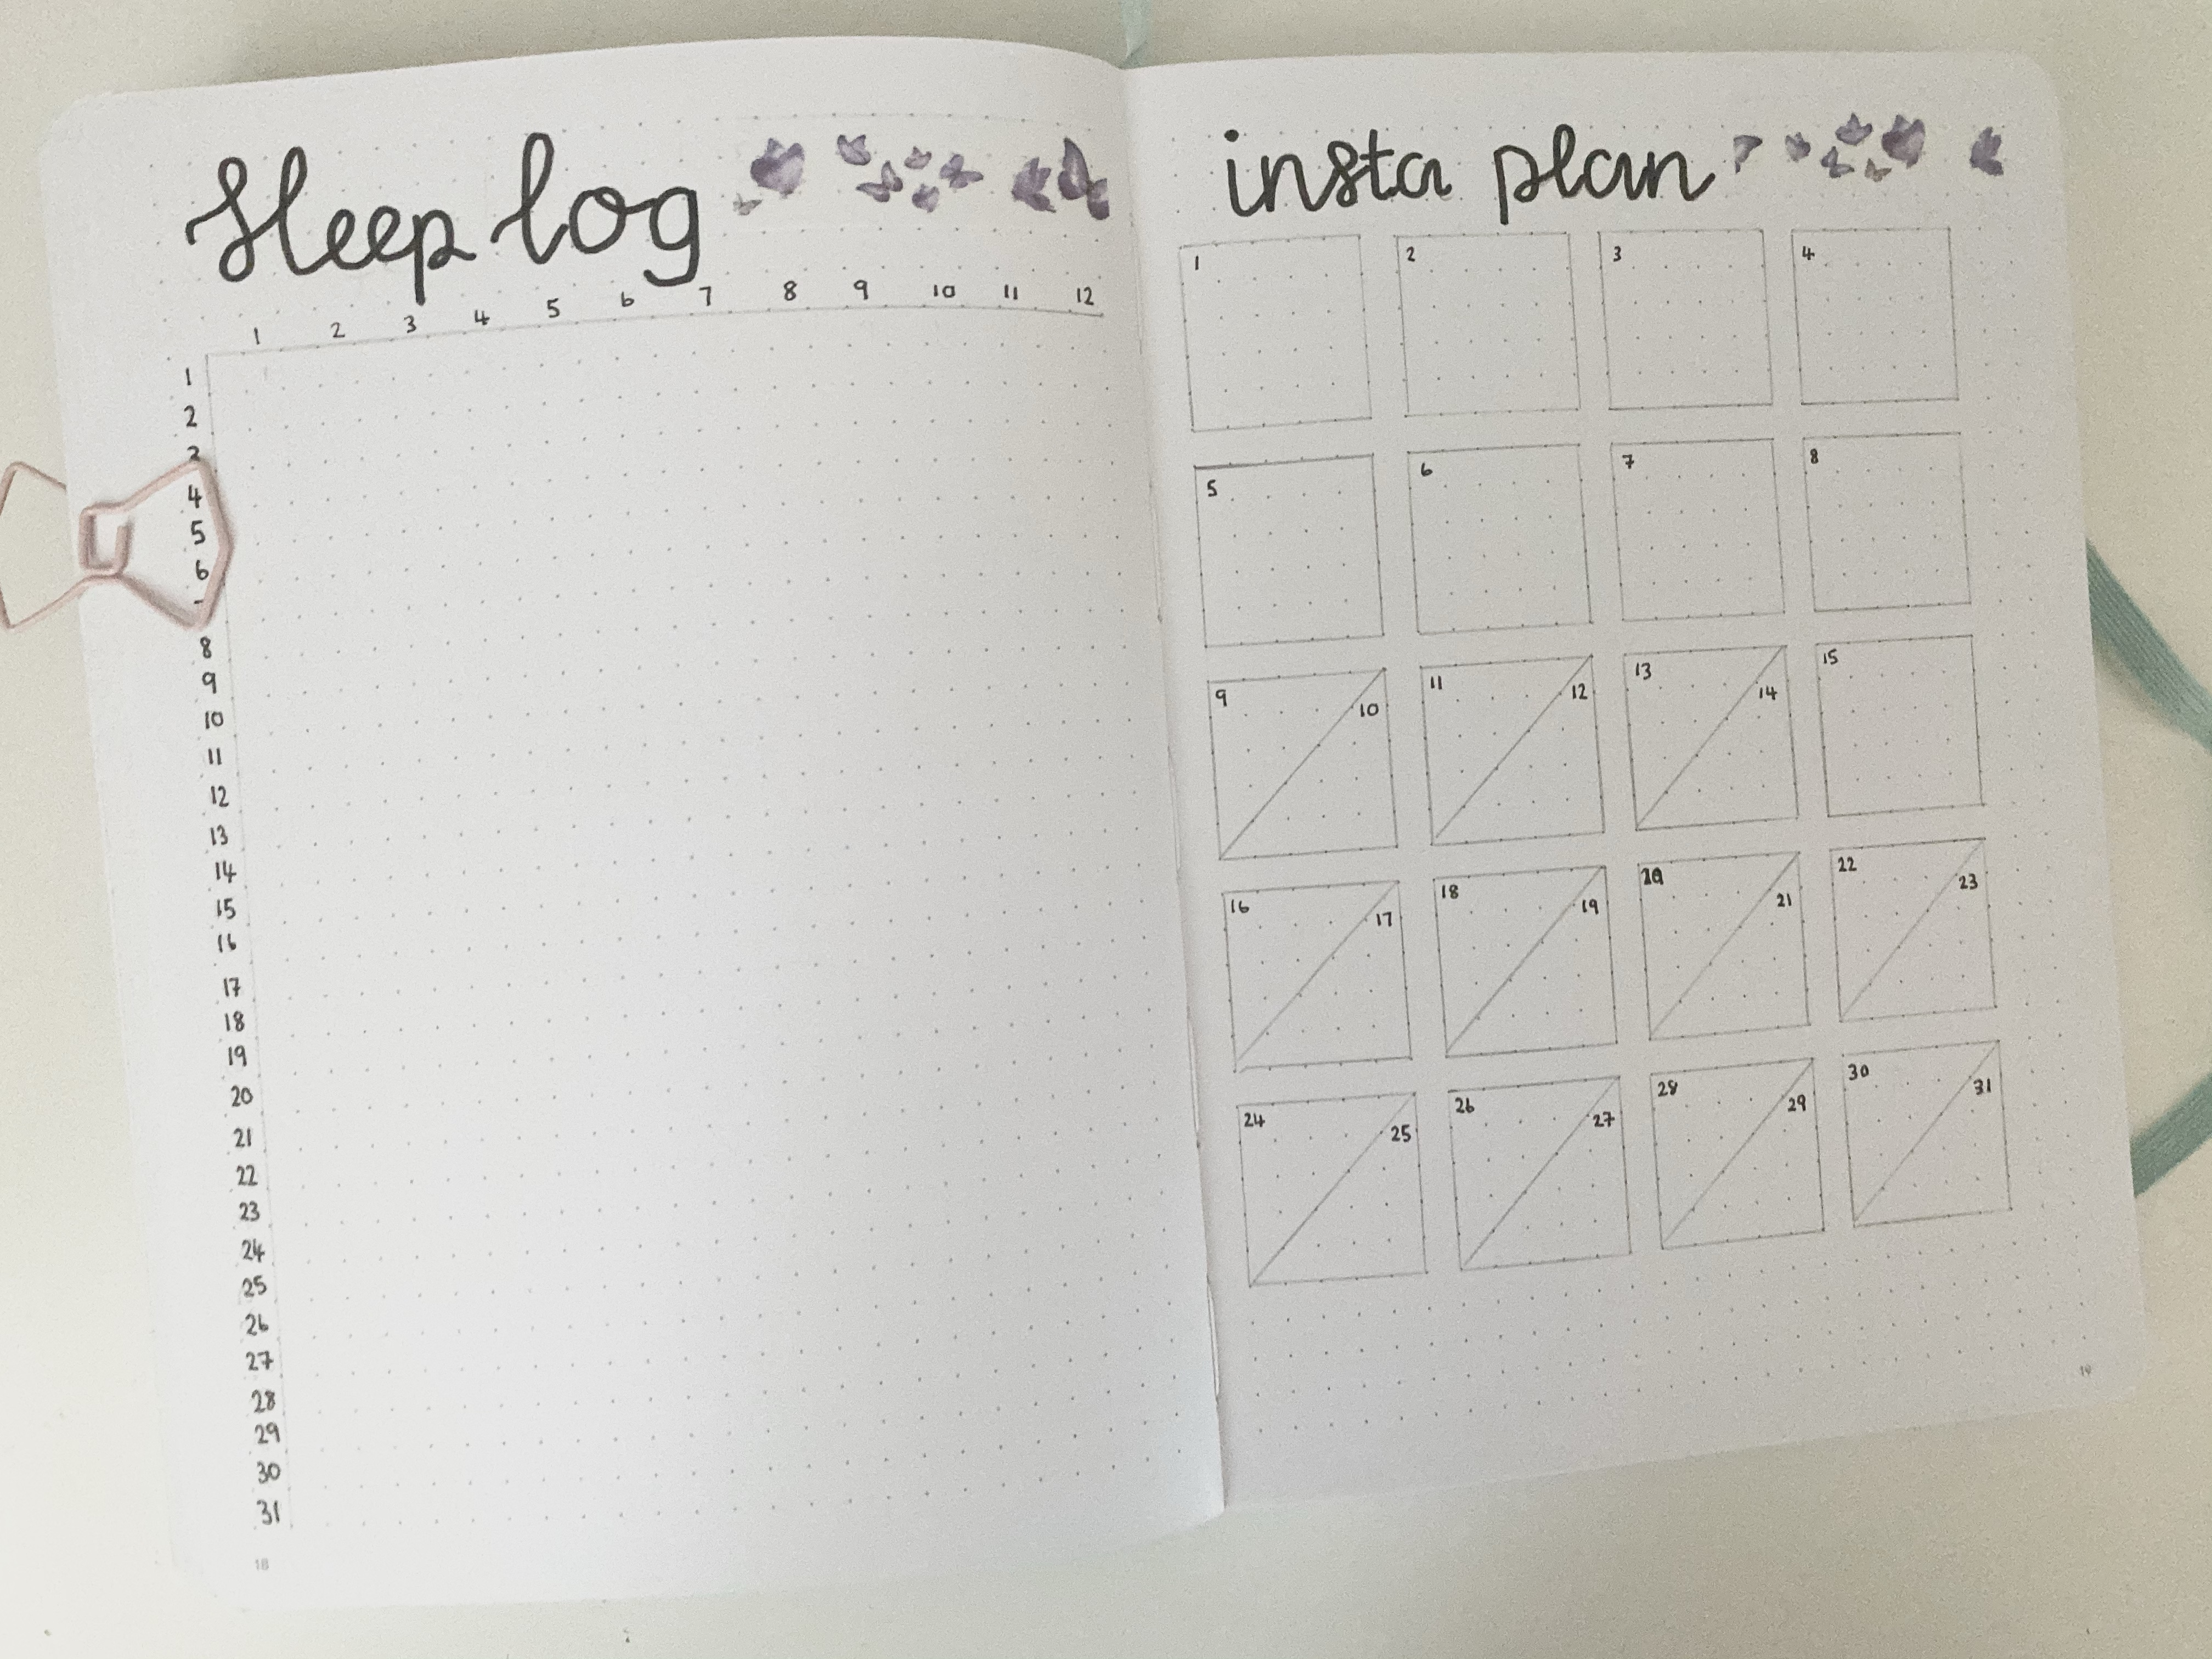 A double page bullet journal spread. On the left page is a sleep log and on the right page is an Instagram content planner.